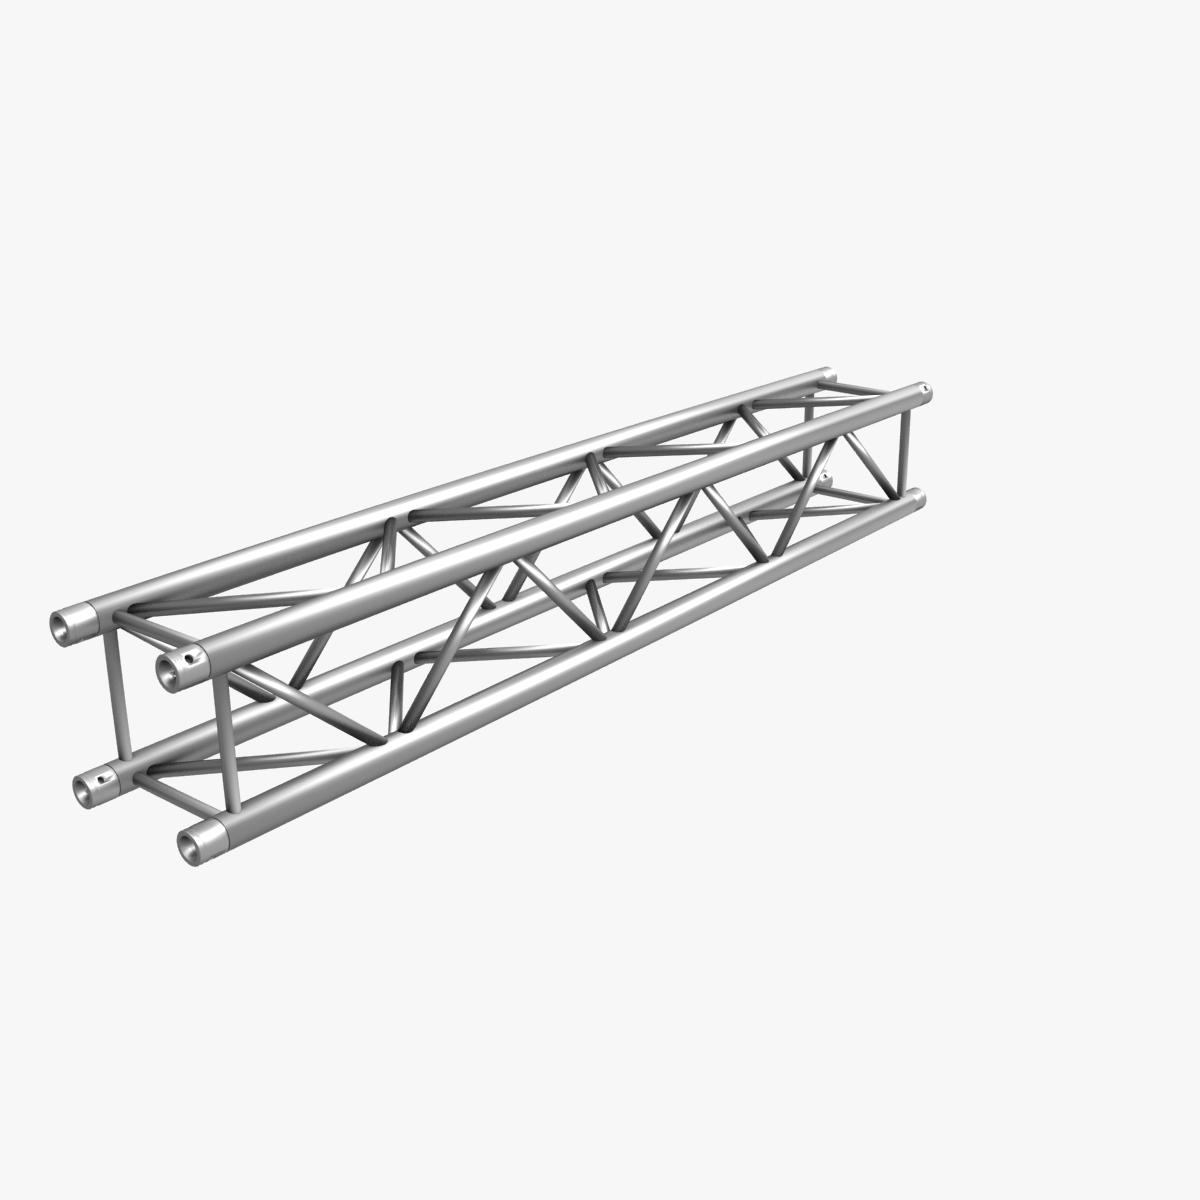 square truss standard (collection 24 modular) 3d model 3ds max dxf fbx c4d dae  texture obj 216333